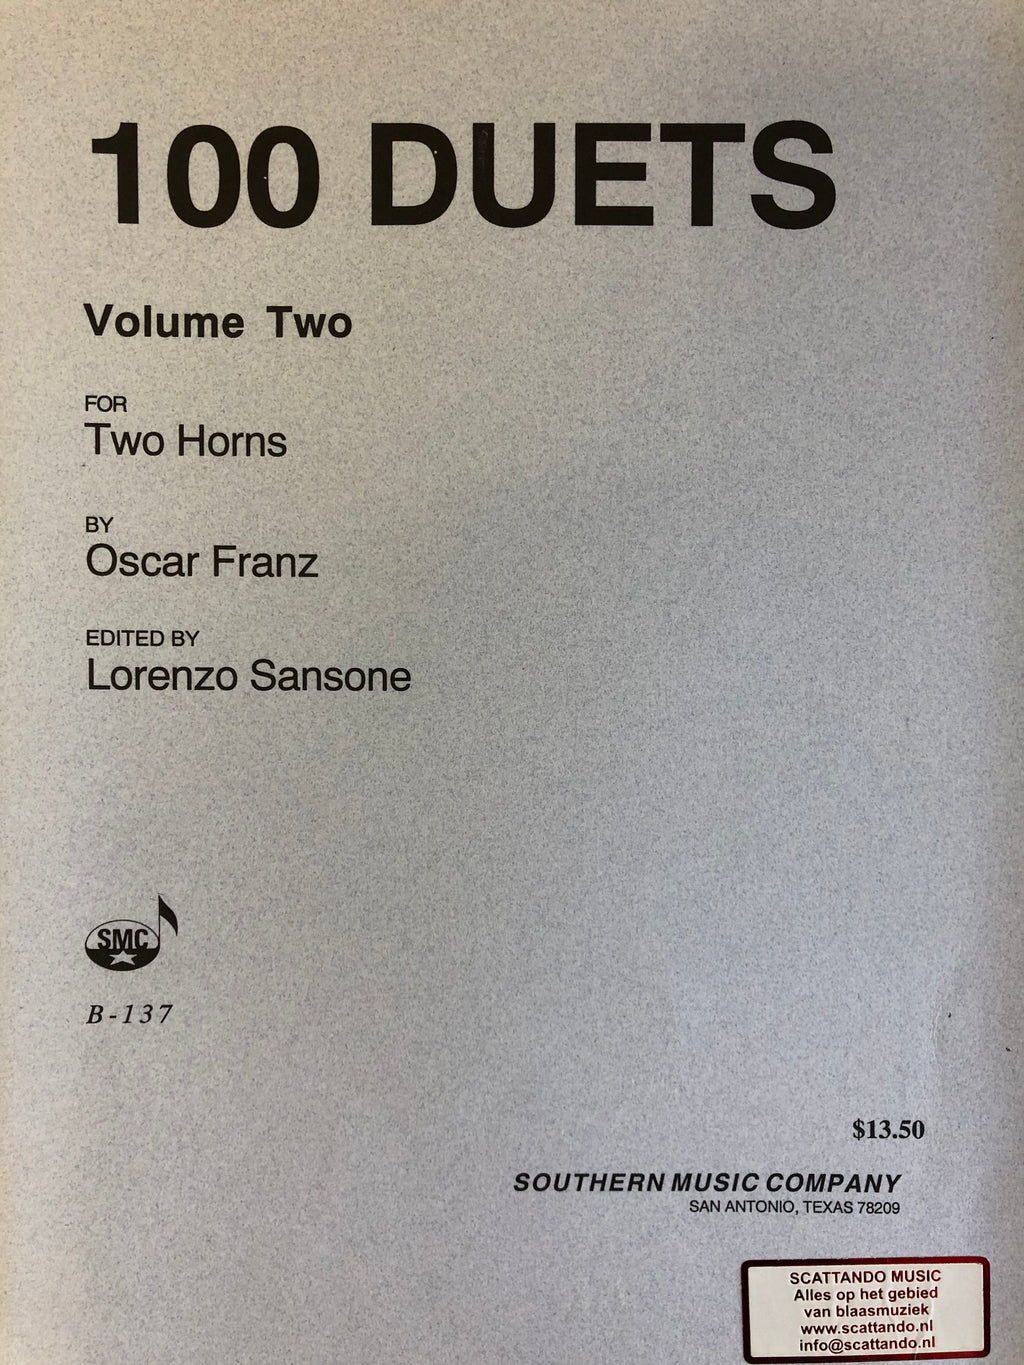 100 Duets for two horns, Volume 2, Franz - Scattando Verkleedhuis